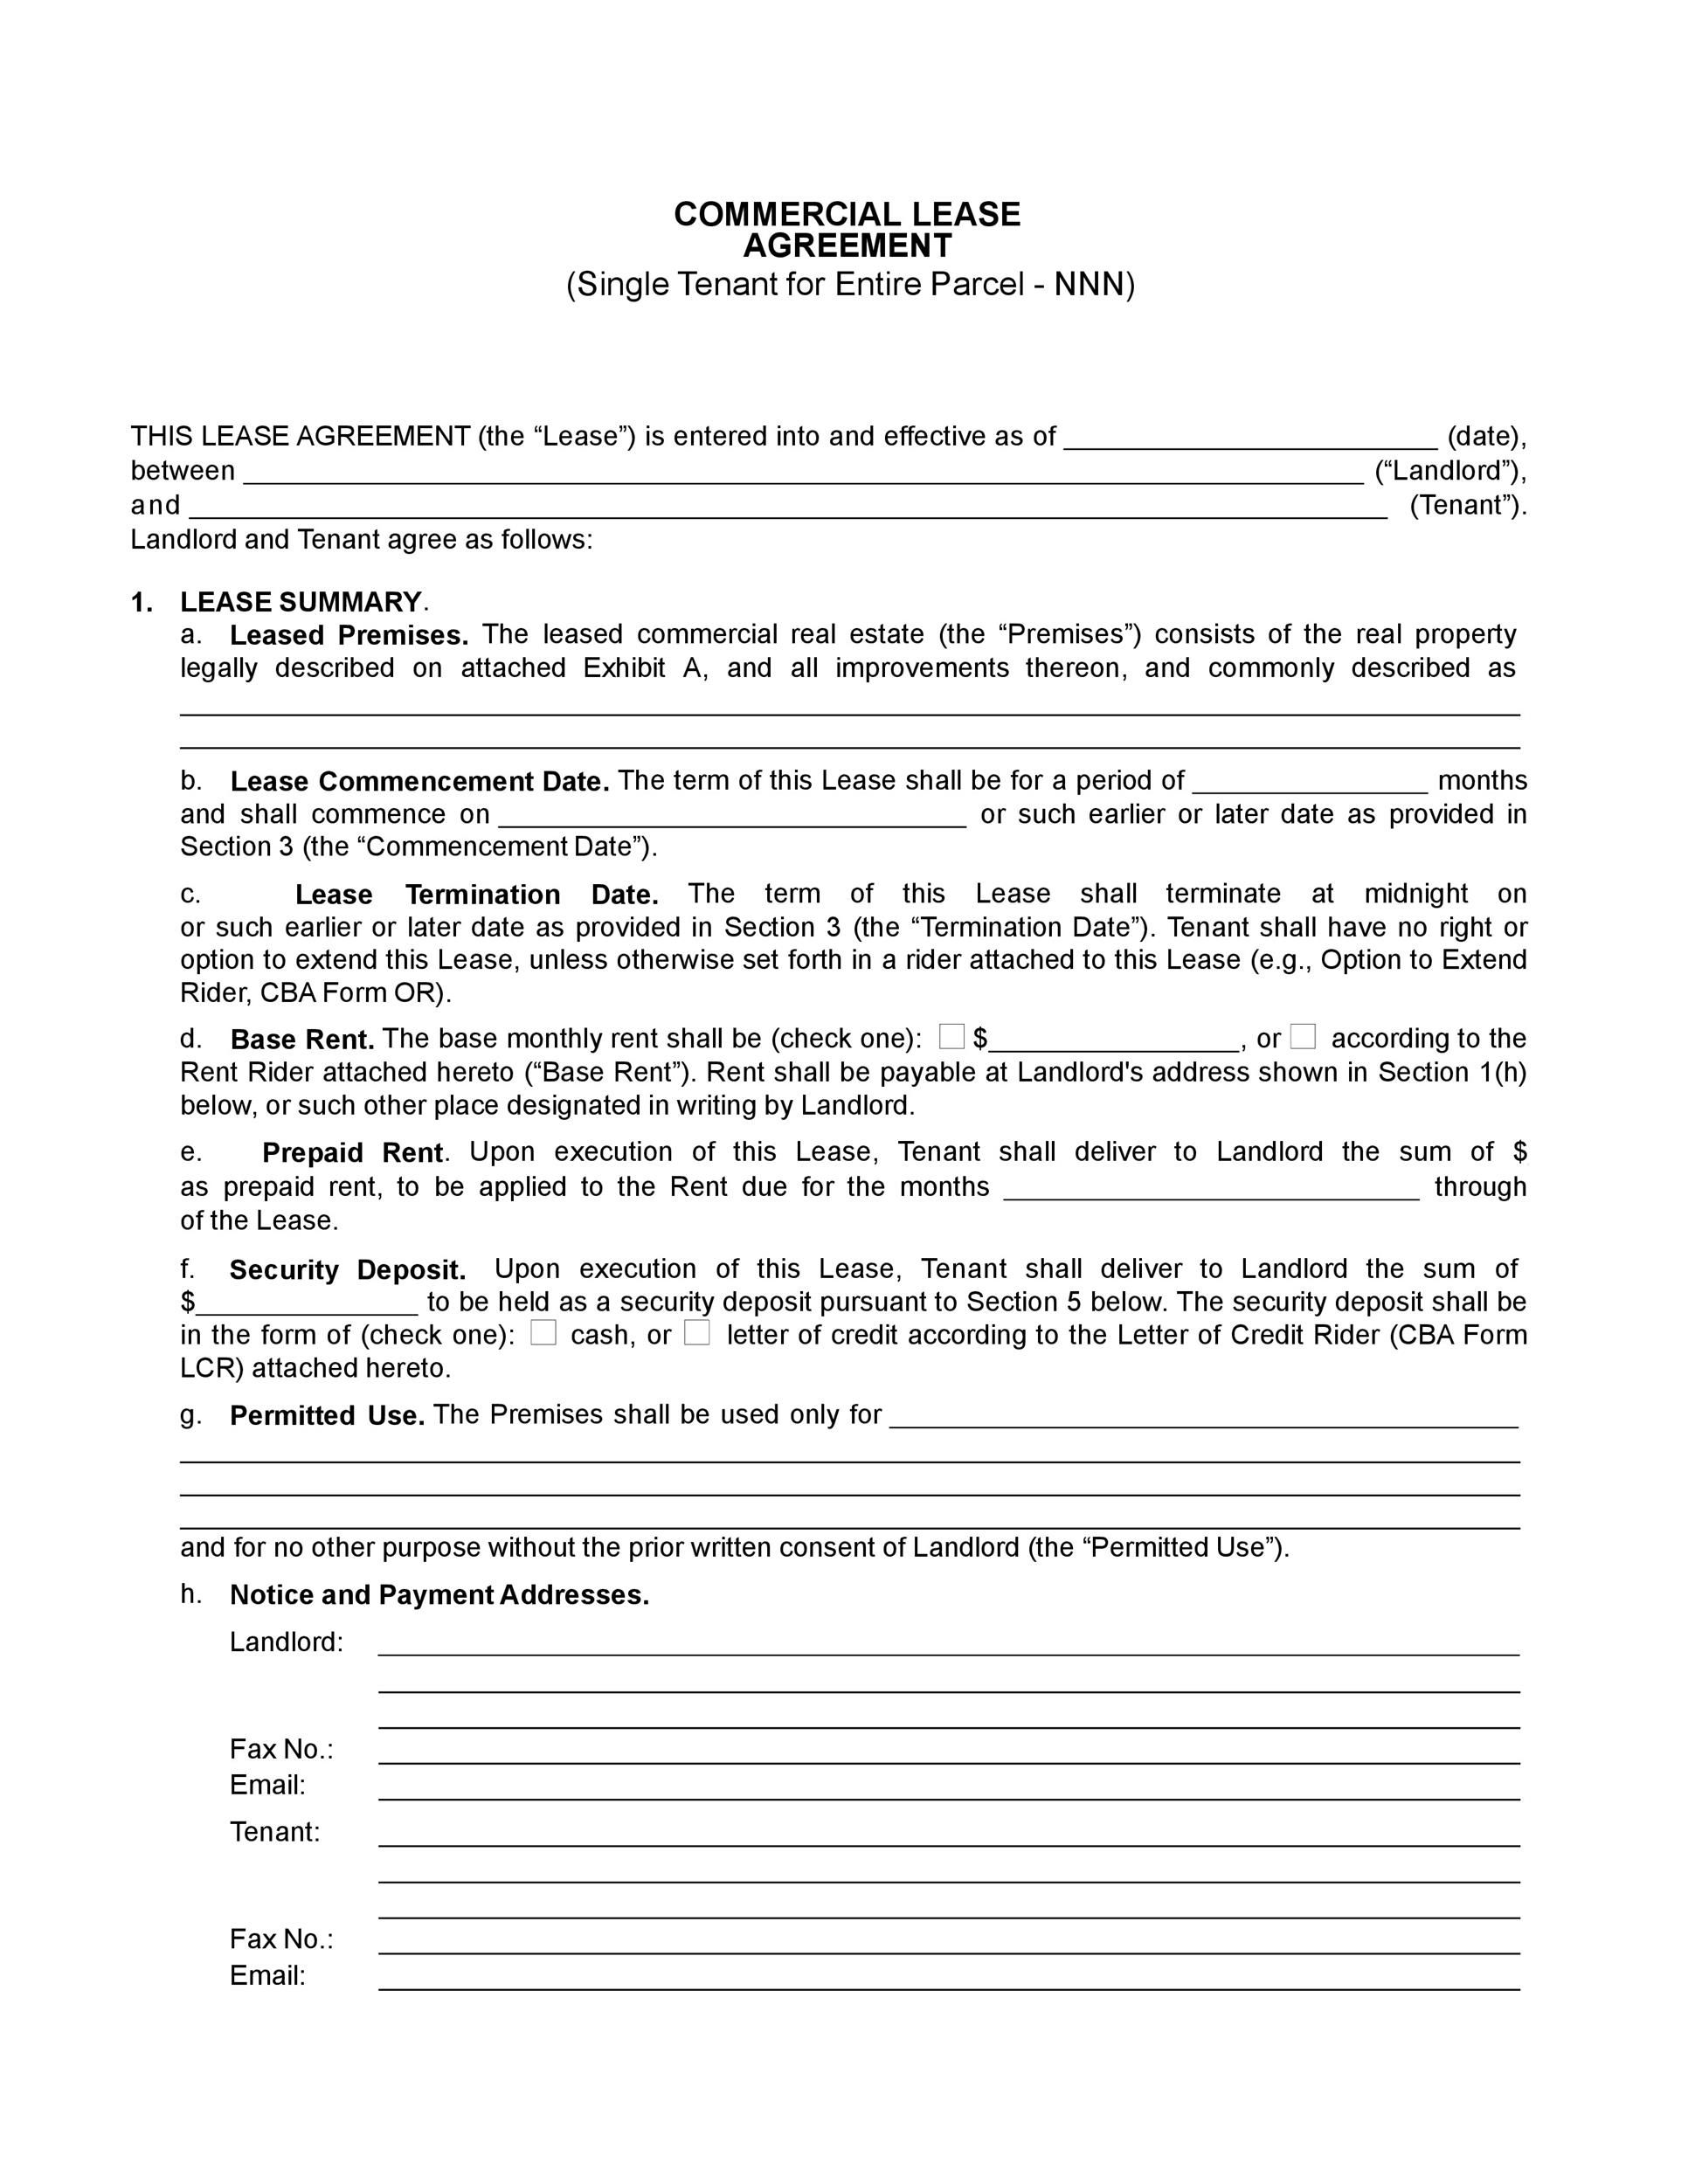 006 Impressive Free Commercial Lease Agreement Template Australia Inspiration  Queensland DownloadFull